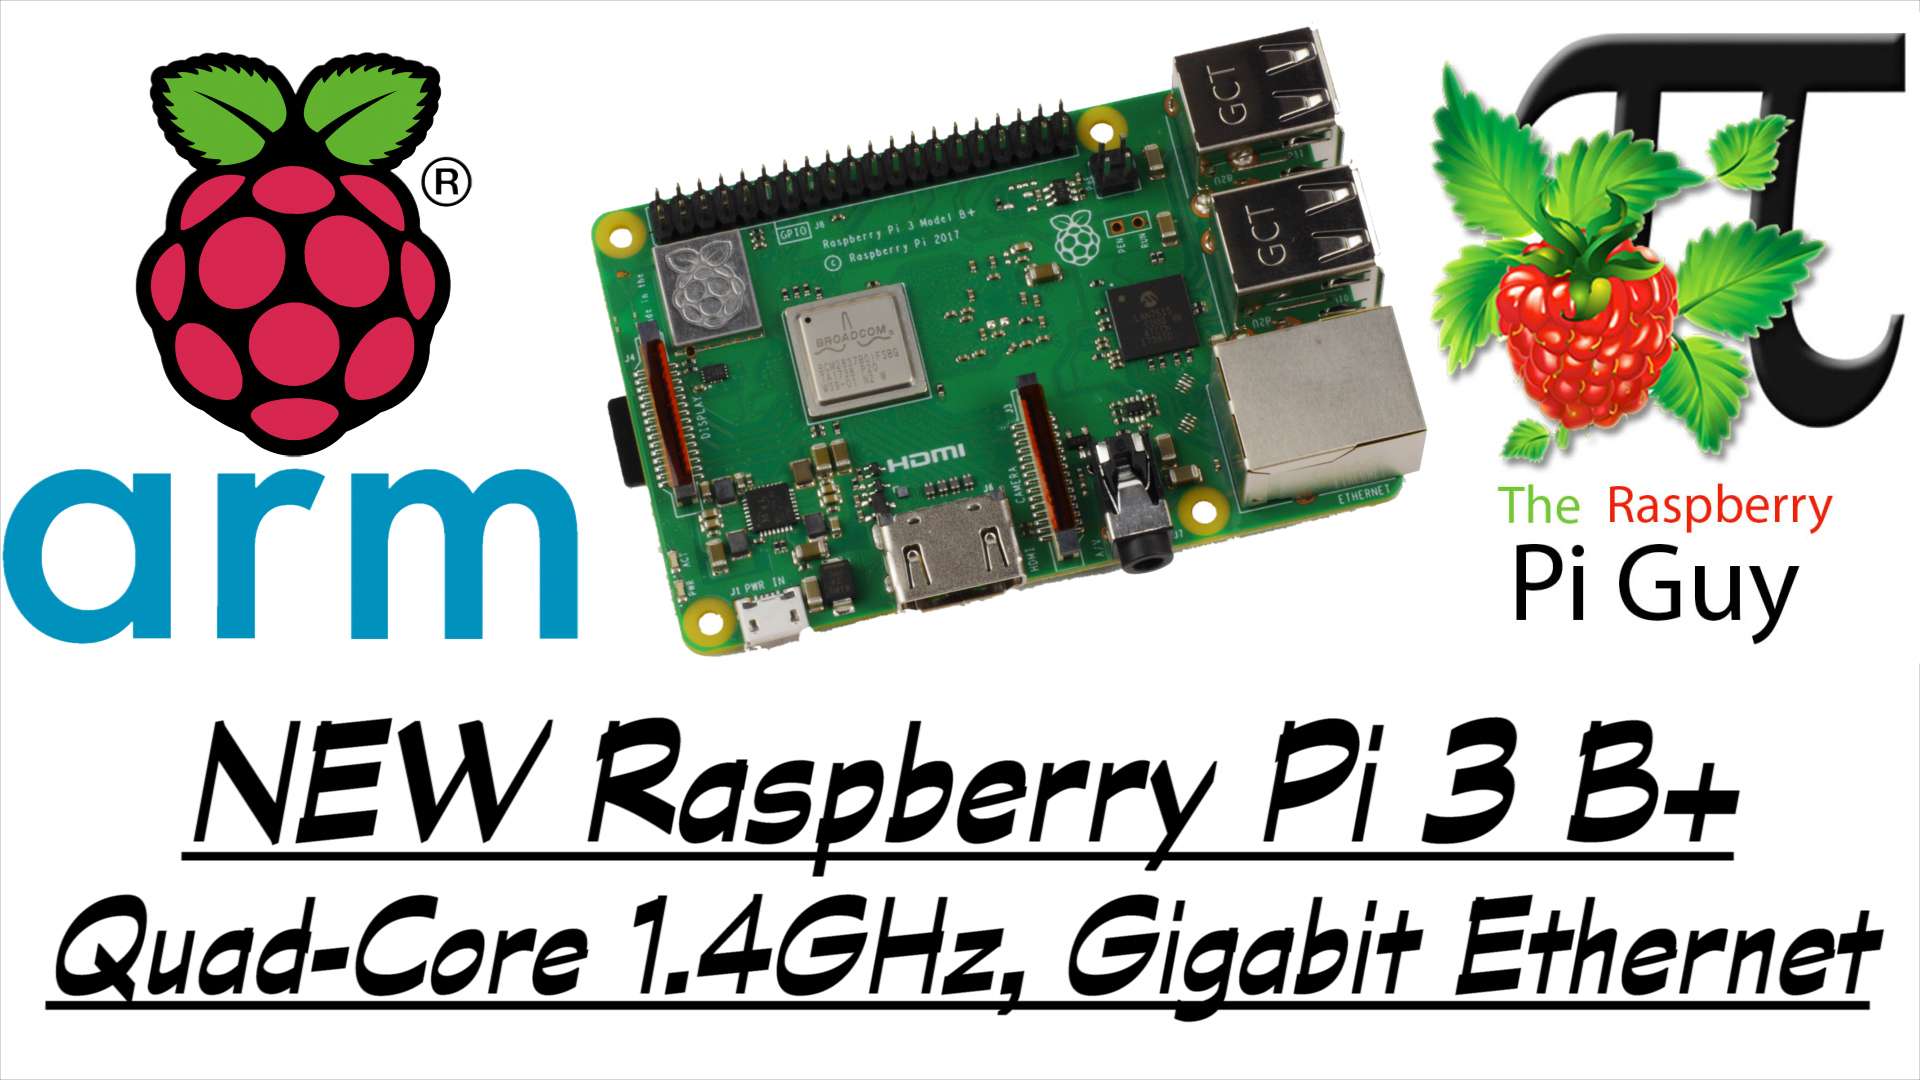 Tutorials videos the raspberry pi guy new raspberry pi 3 b quad core 14ghz gigabit ethernet baditri Images